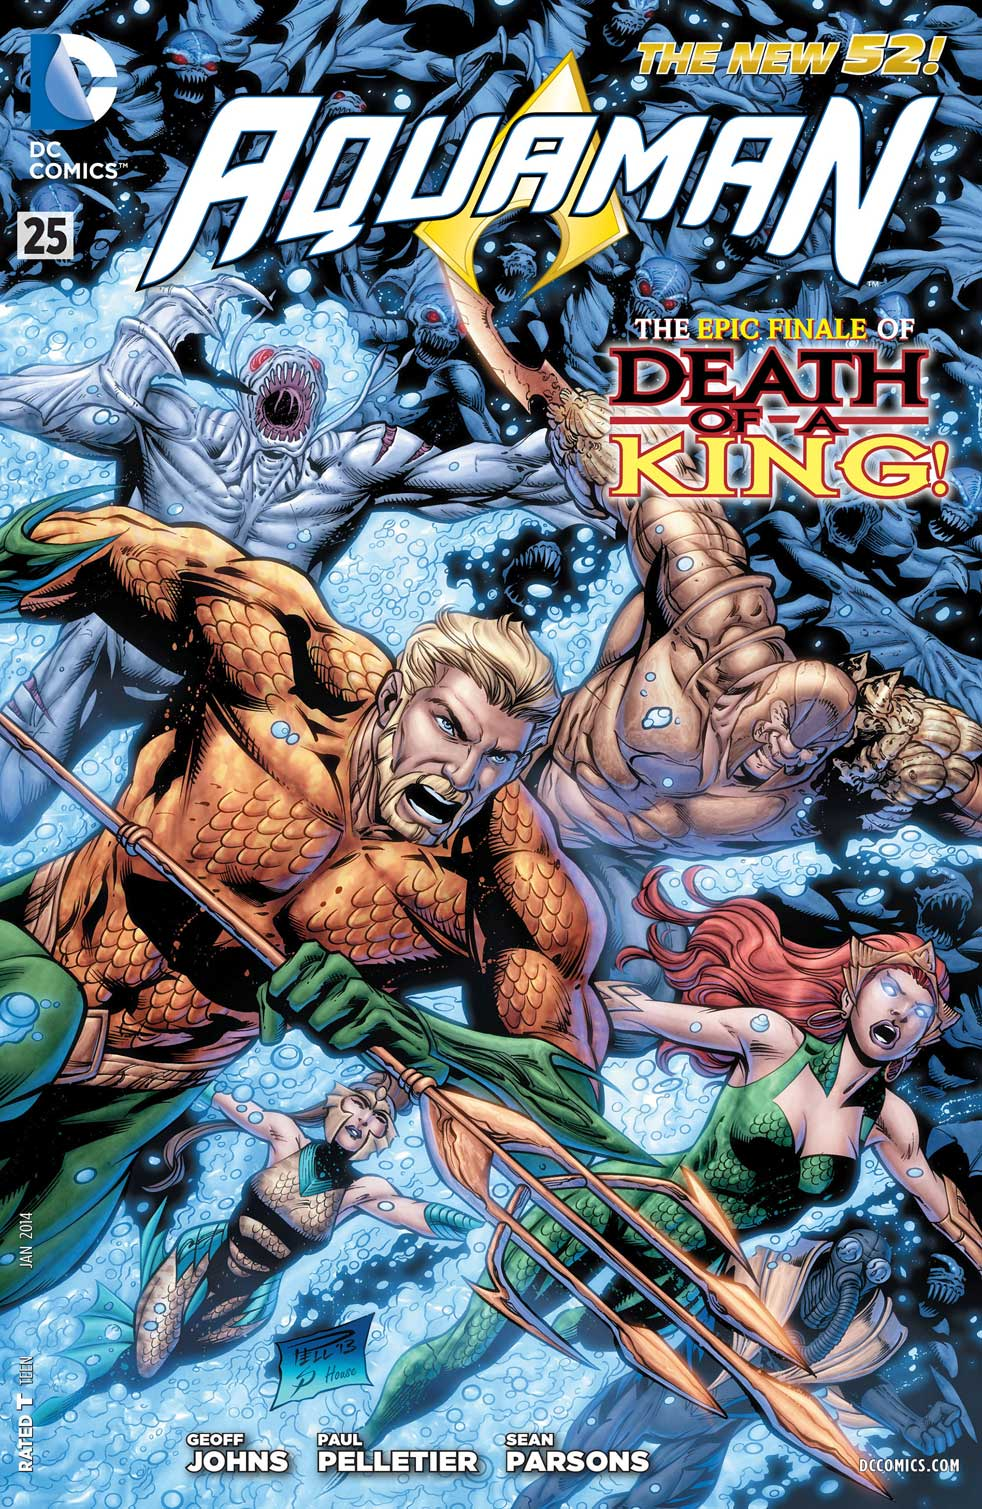 Aquaman #25 cover by Paul Pelletier and Sean Parsons